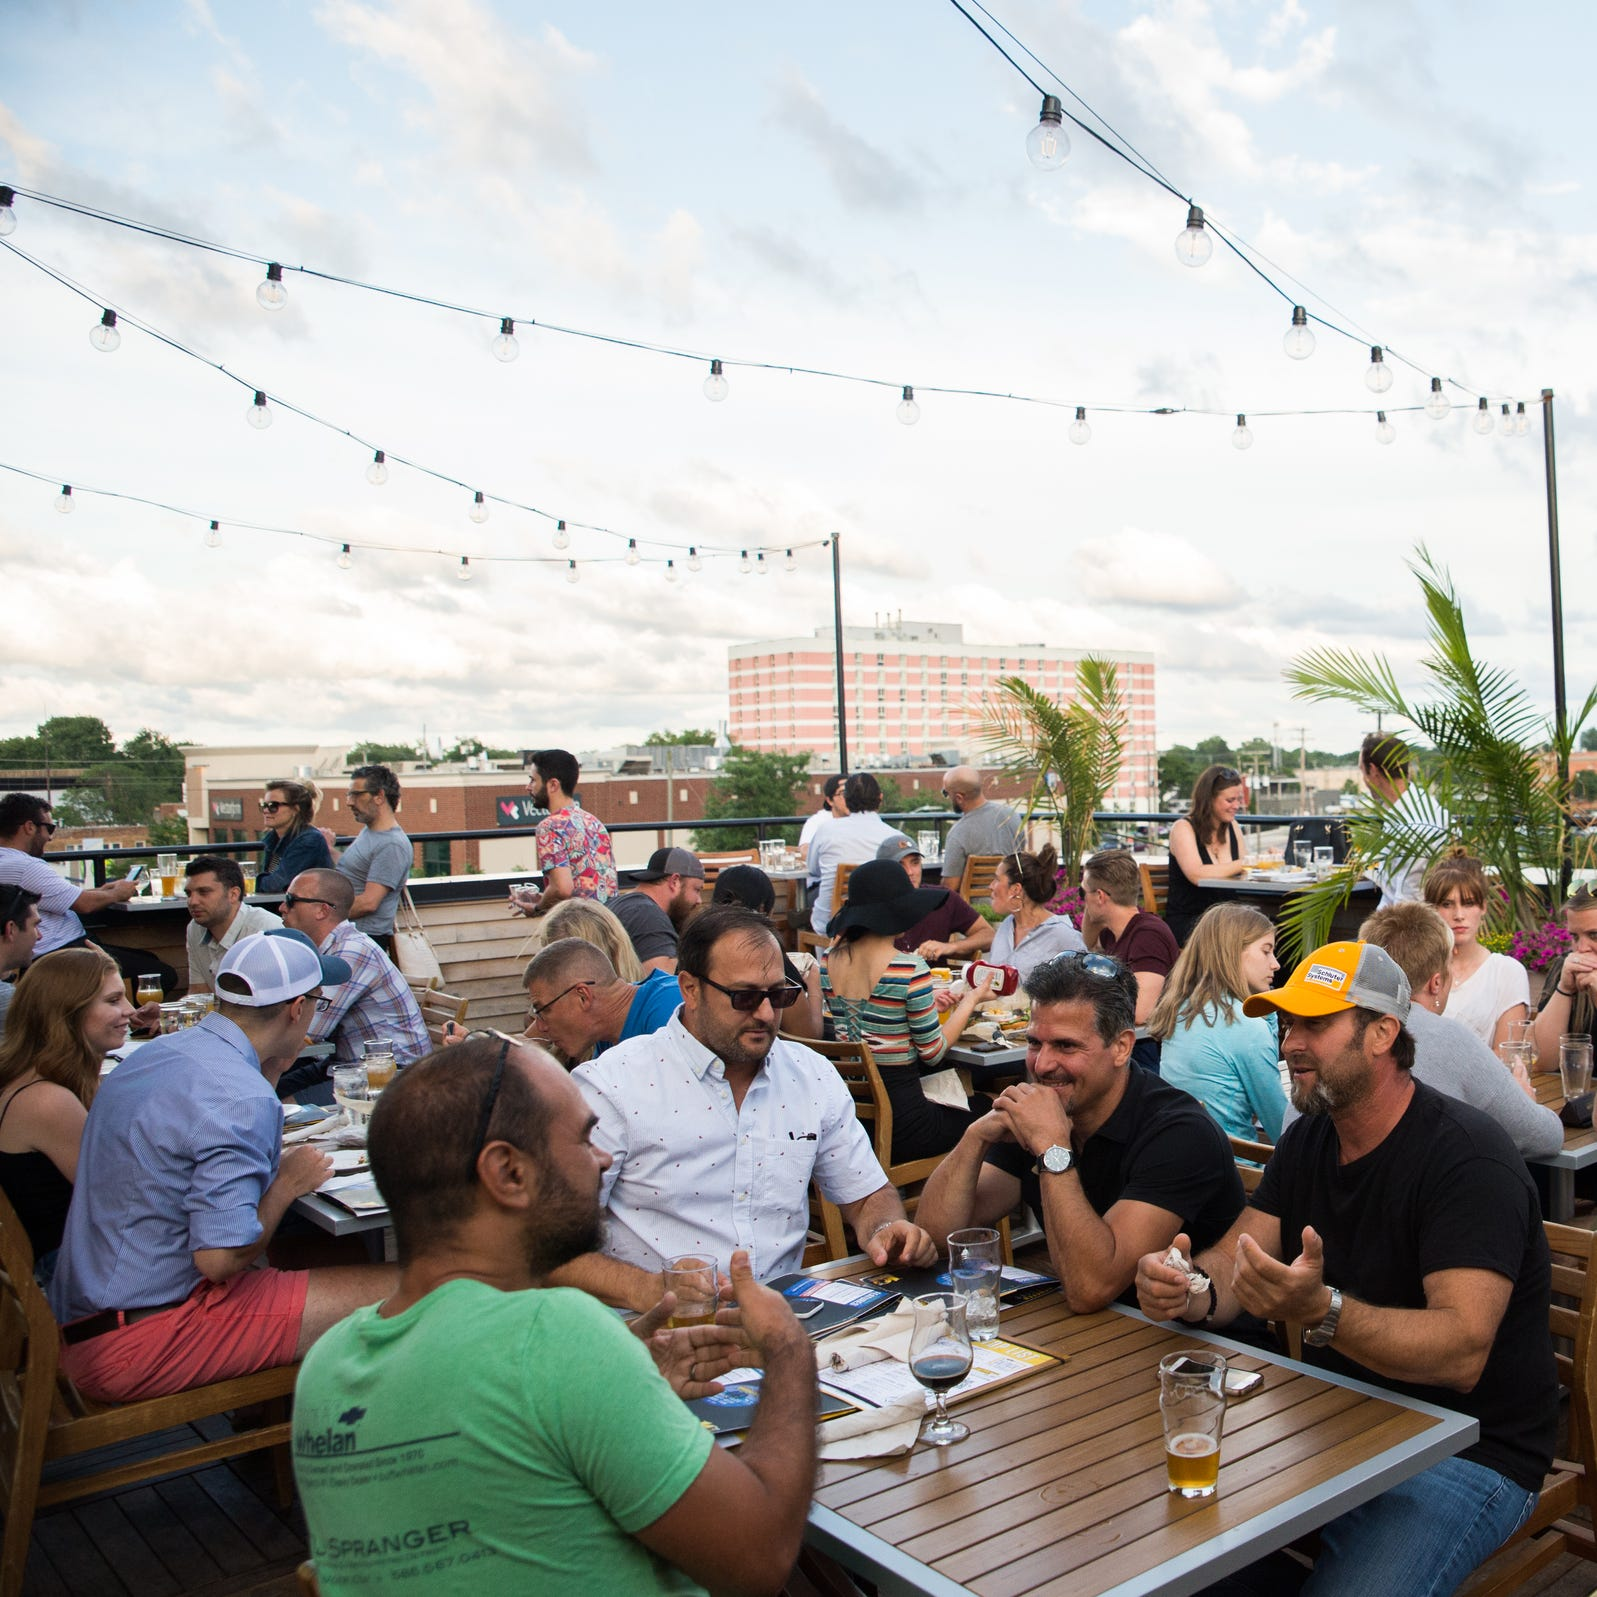 15 rooftop bars to try in metro Detroit